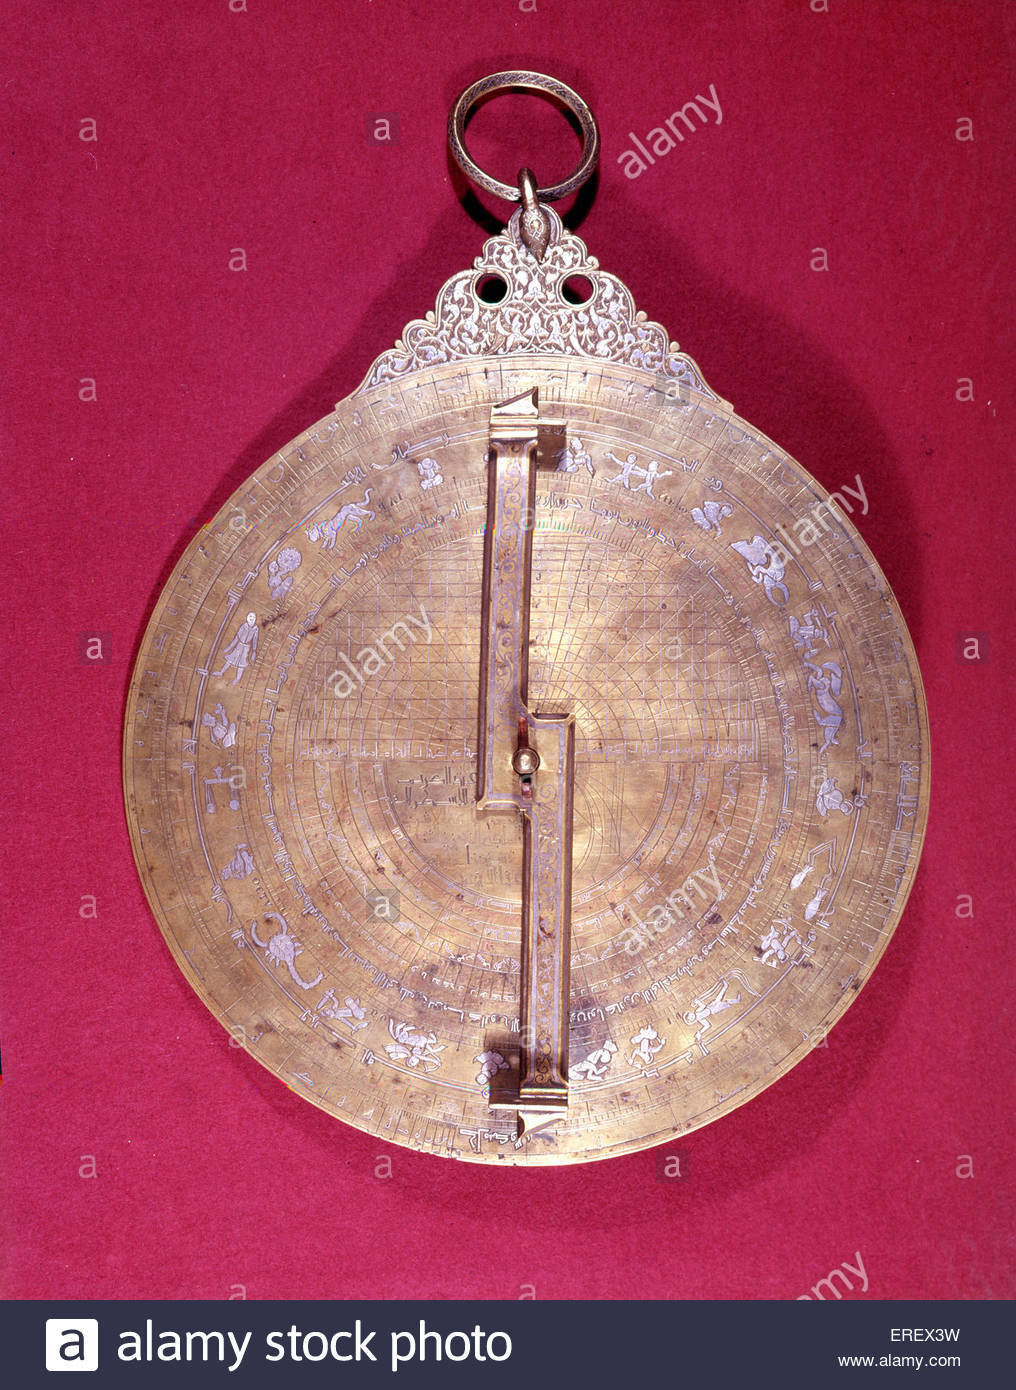 13th century astrolabe. Engraved with star map, showing revolving sighting bar.  Instrument   historically used - Stock Image